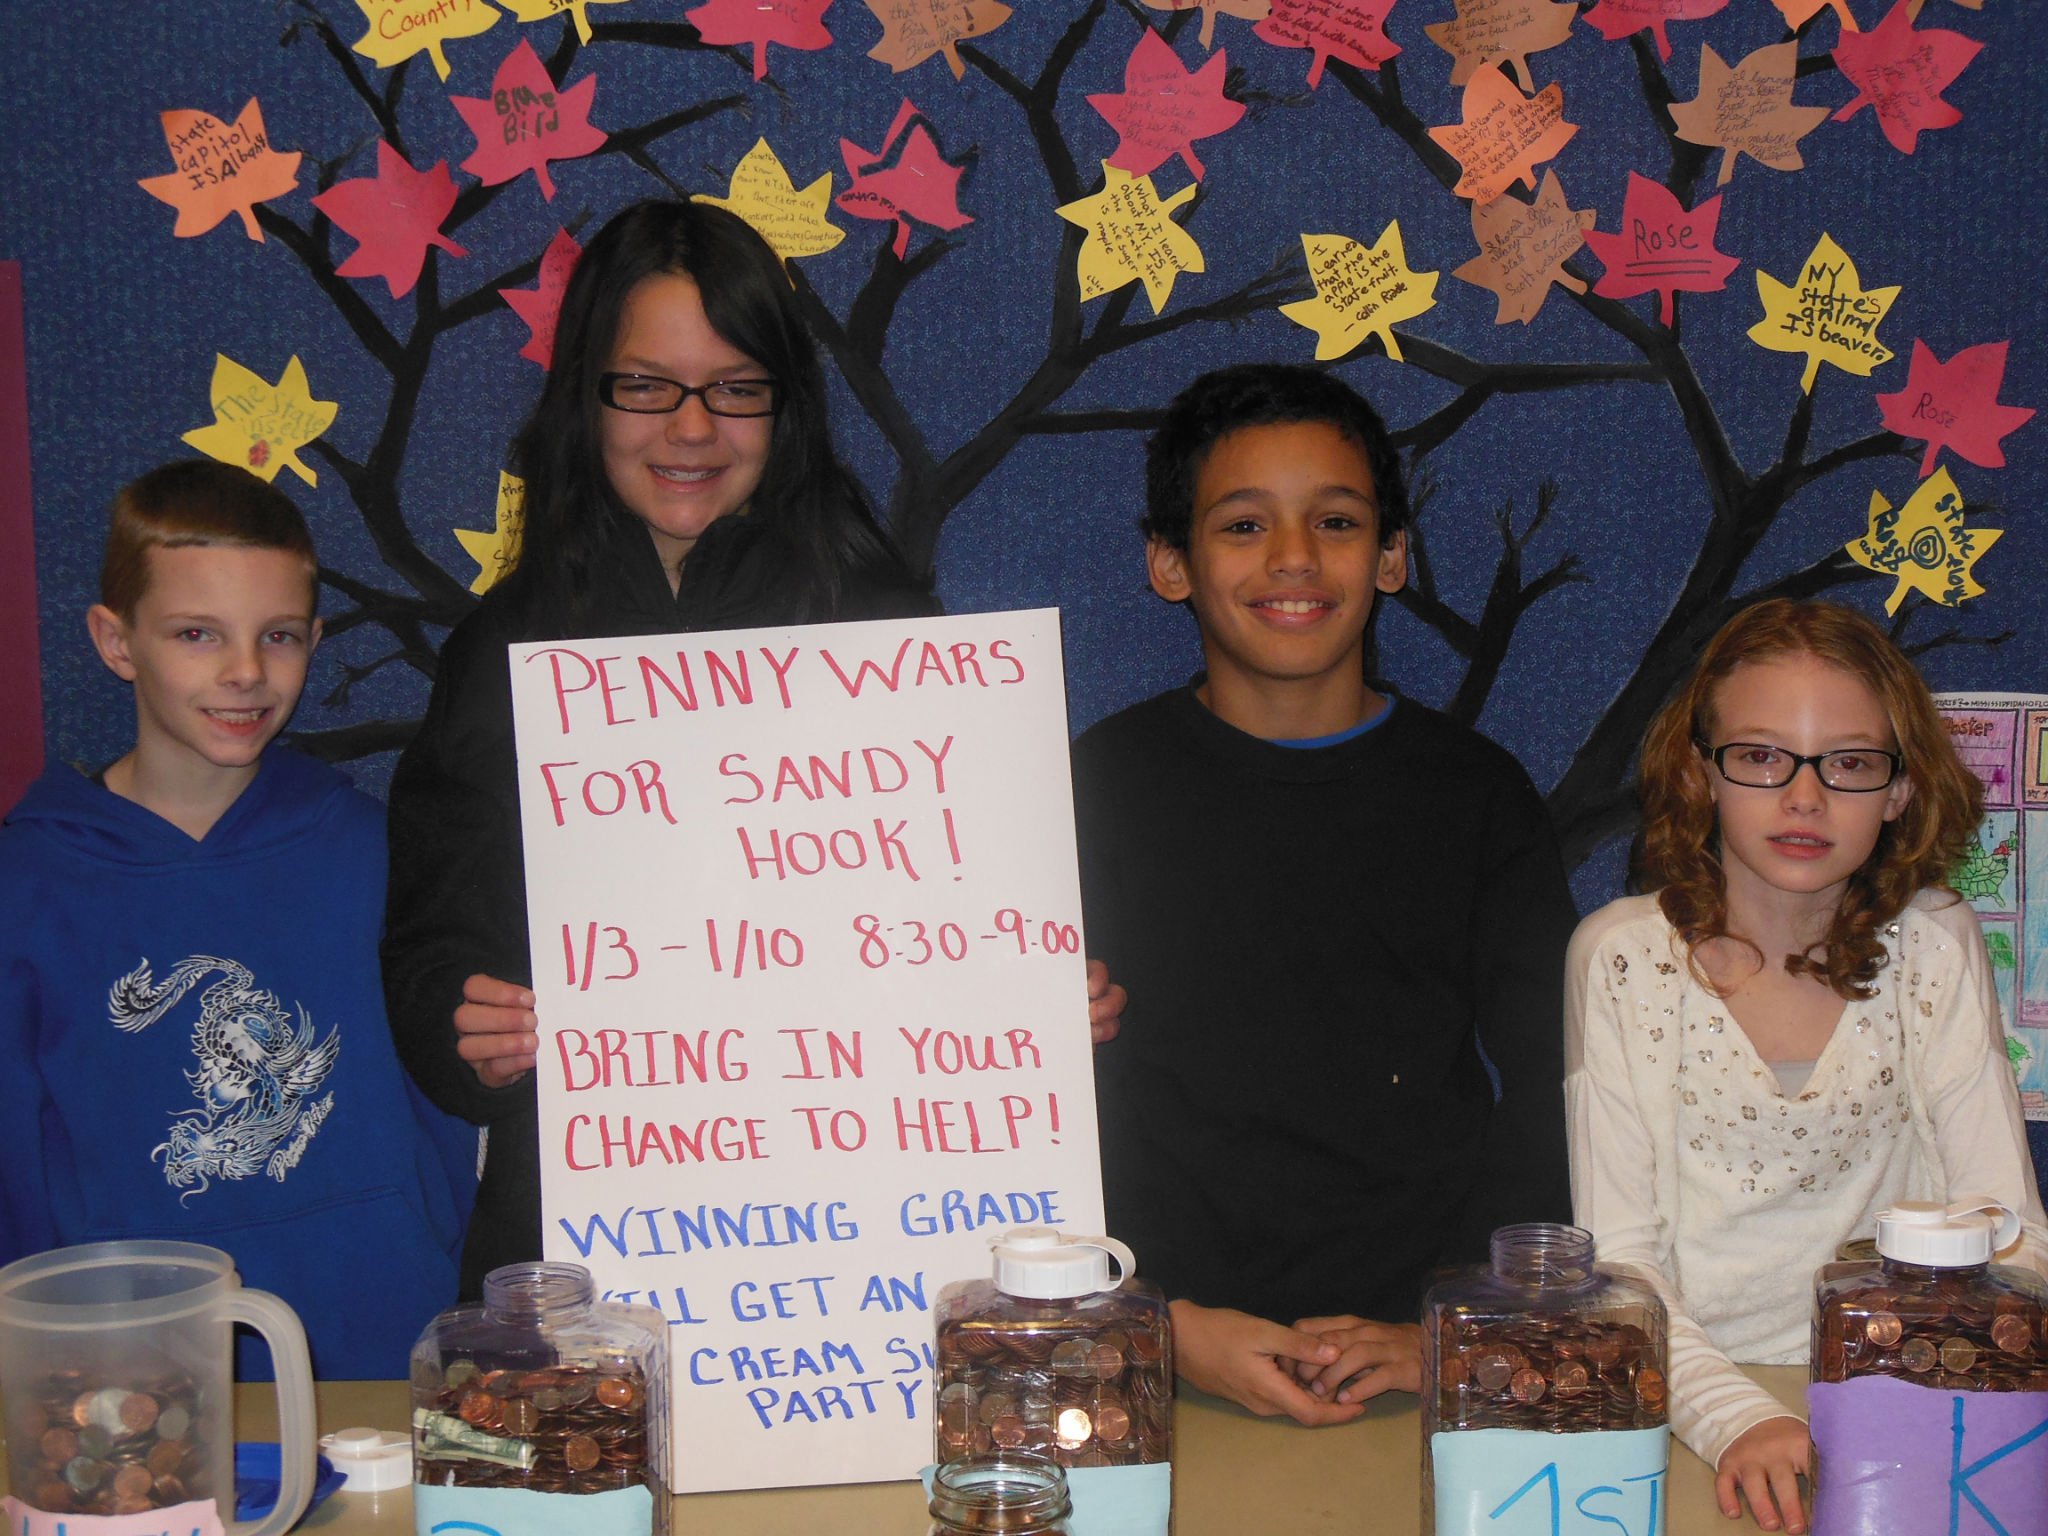 Students help Newtown one penny at a time